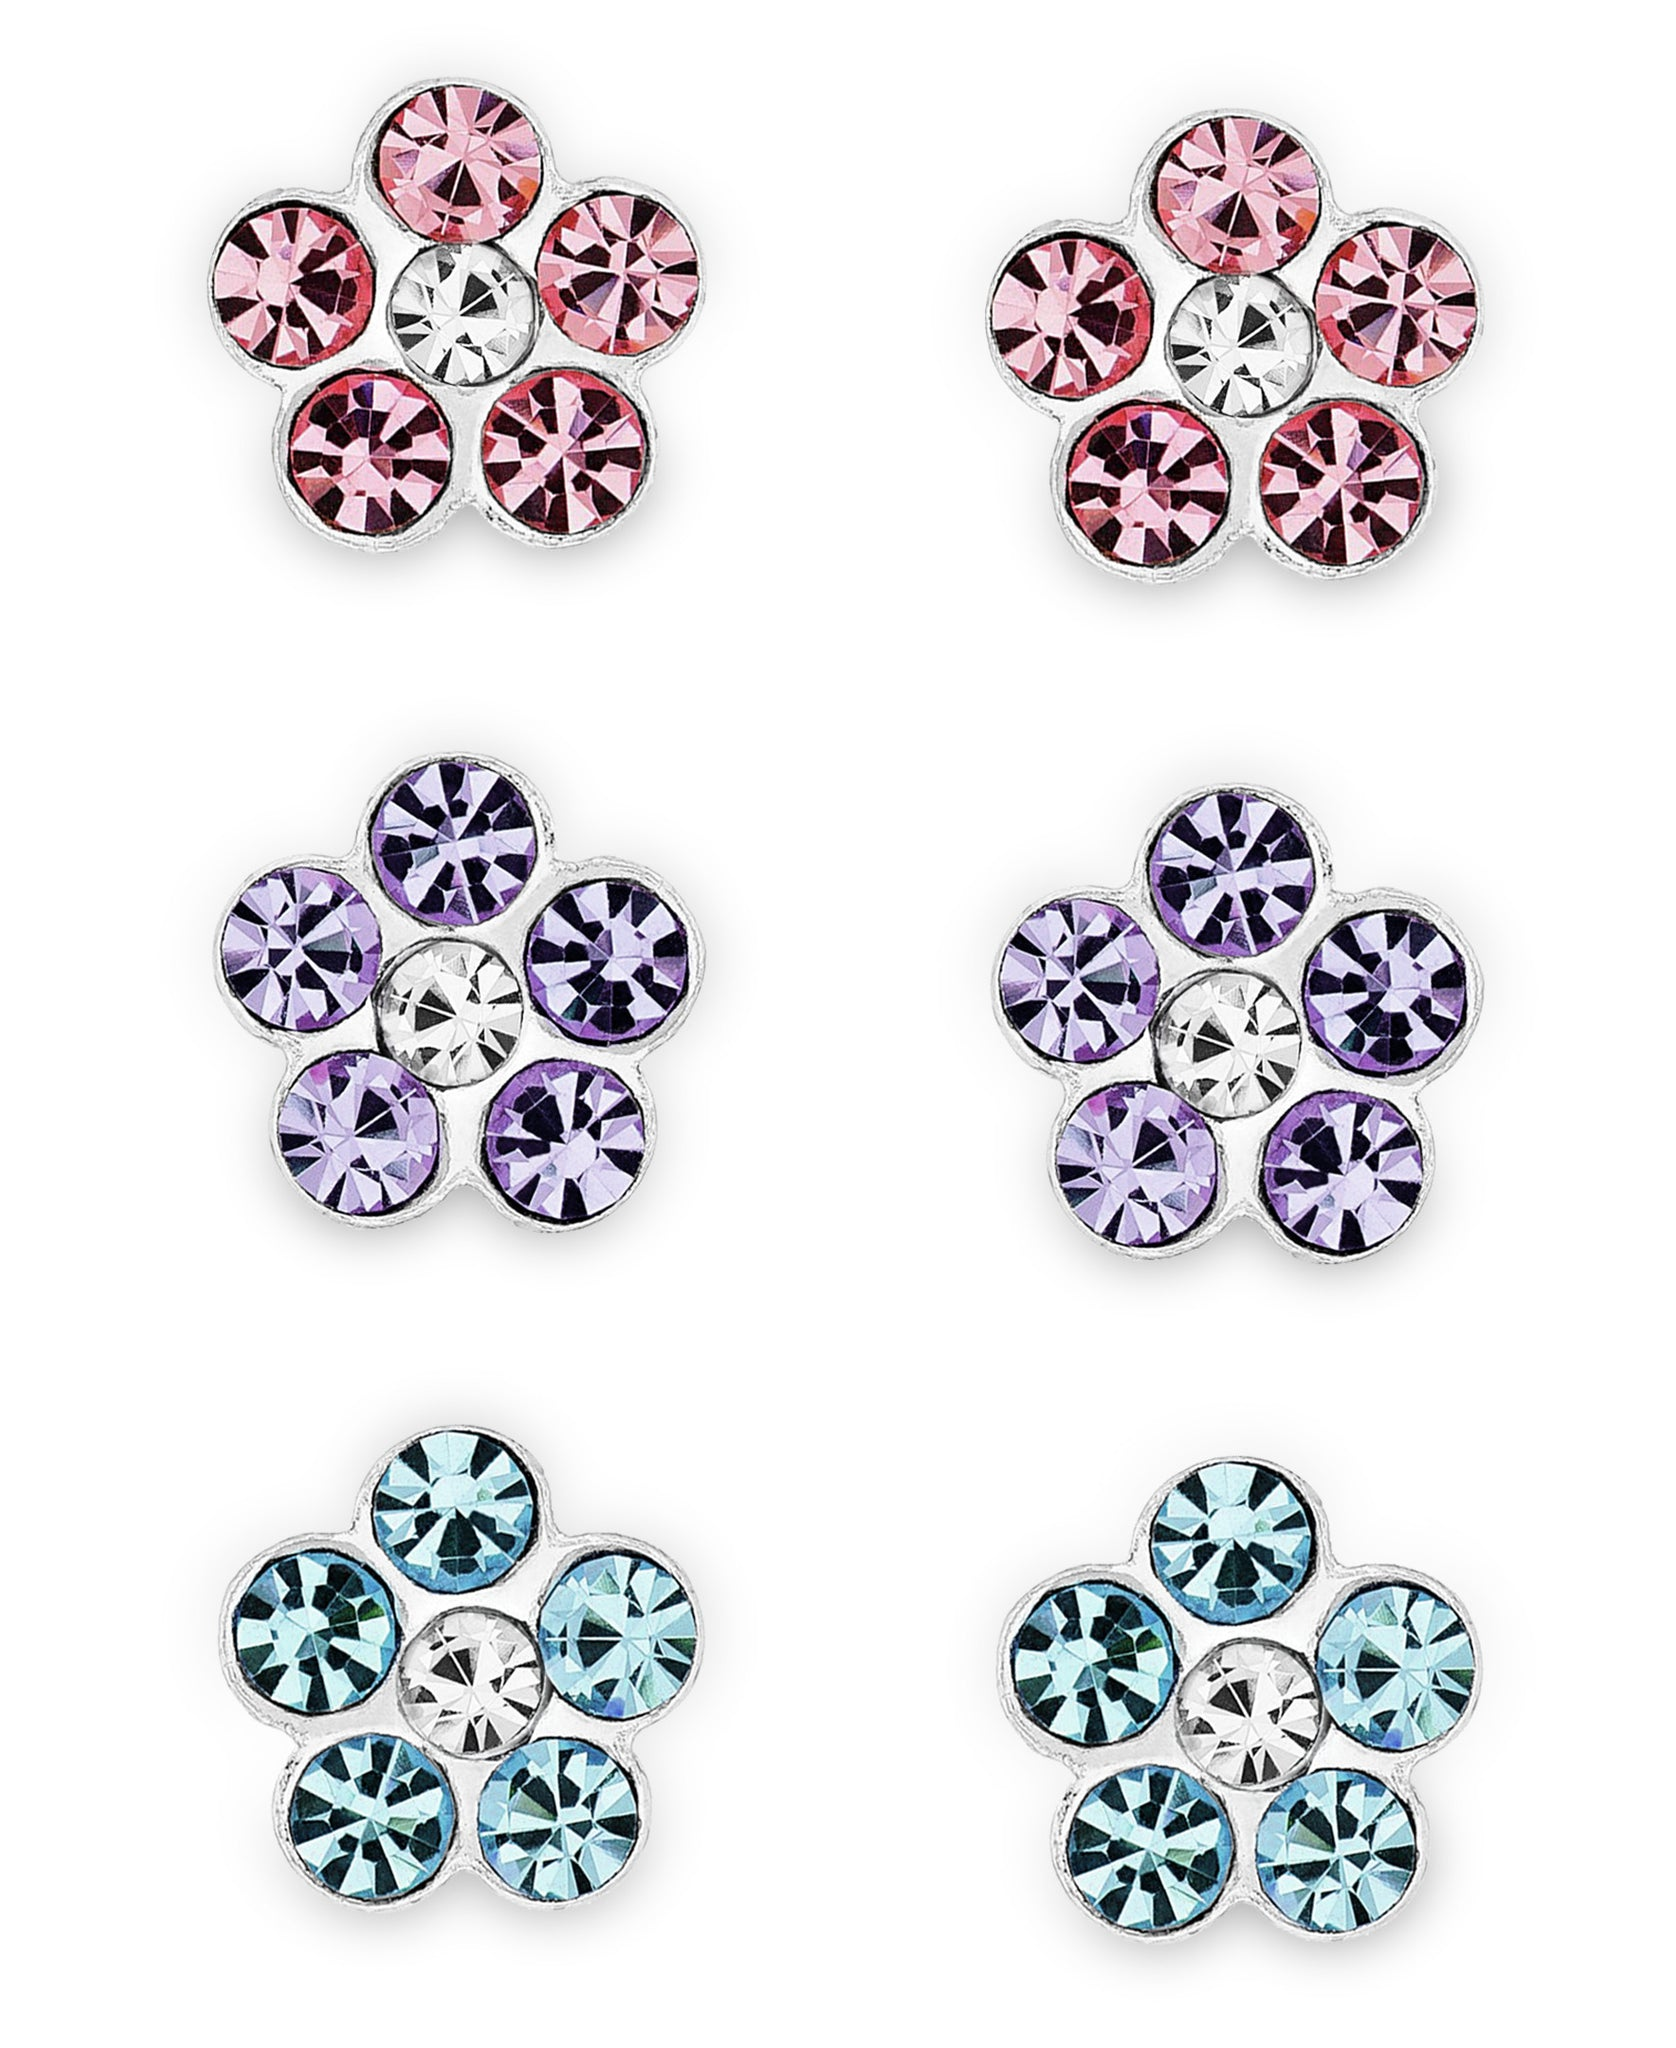 Children's Sterling Silver Crystal Flower Stud Earrings - Set of 3 - Rhona Sutton Jewellery